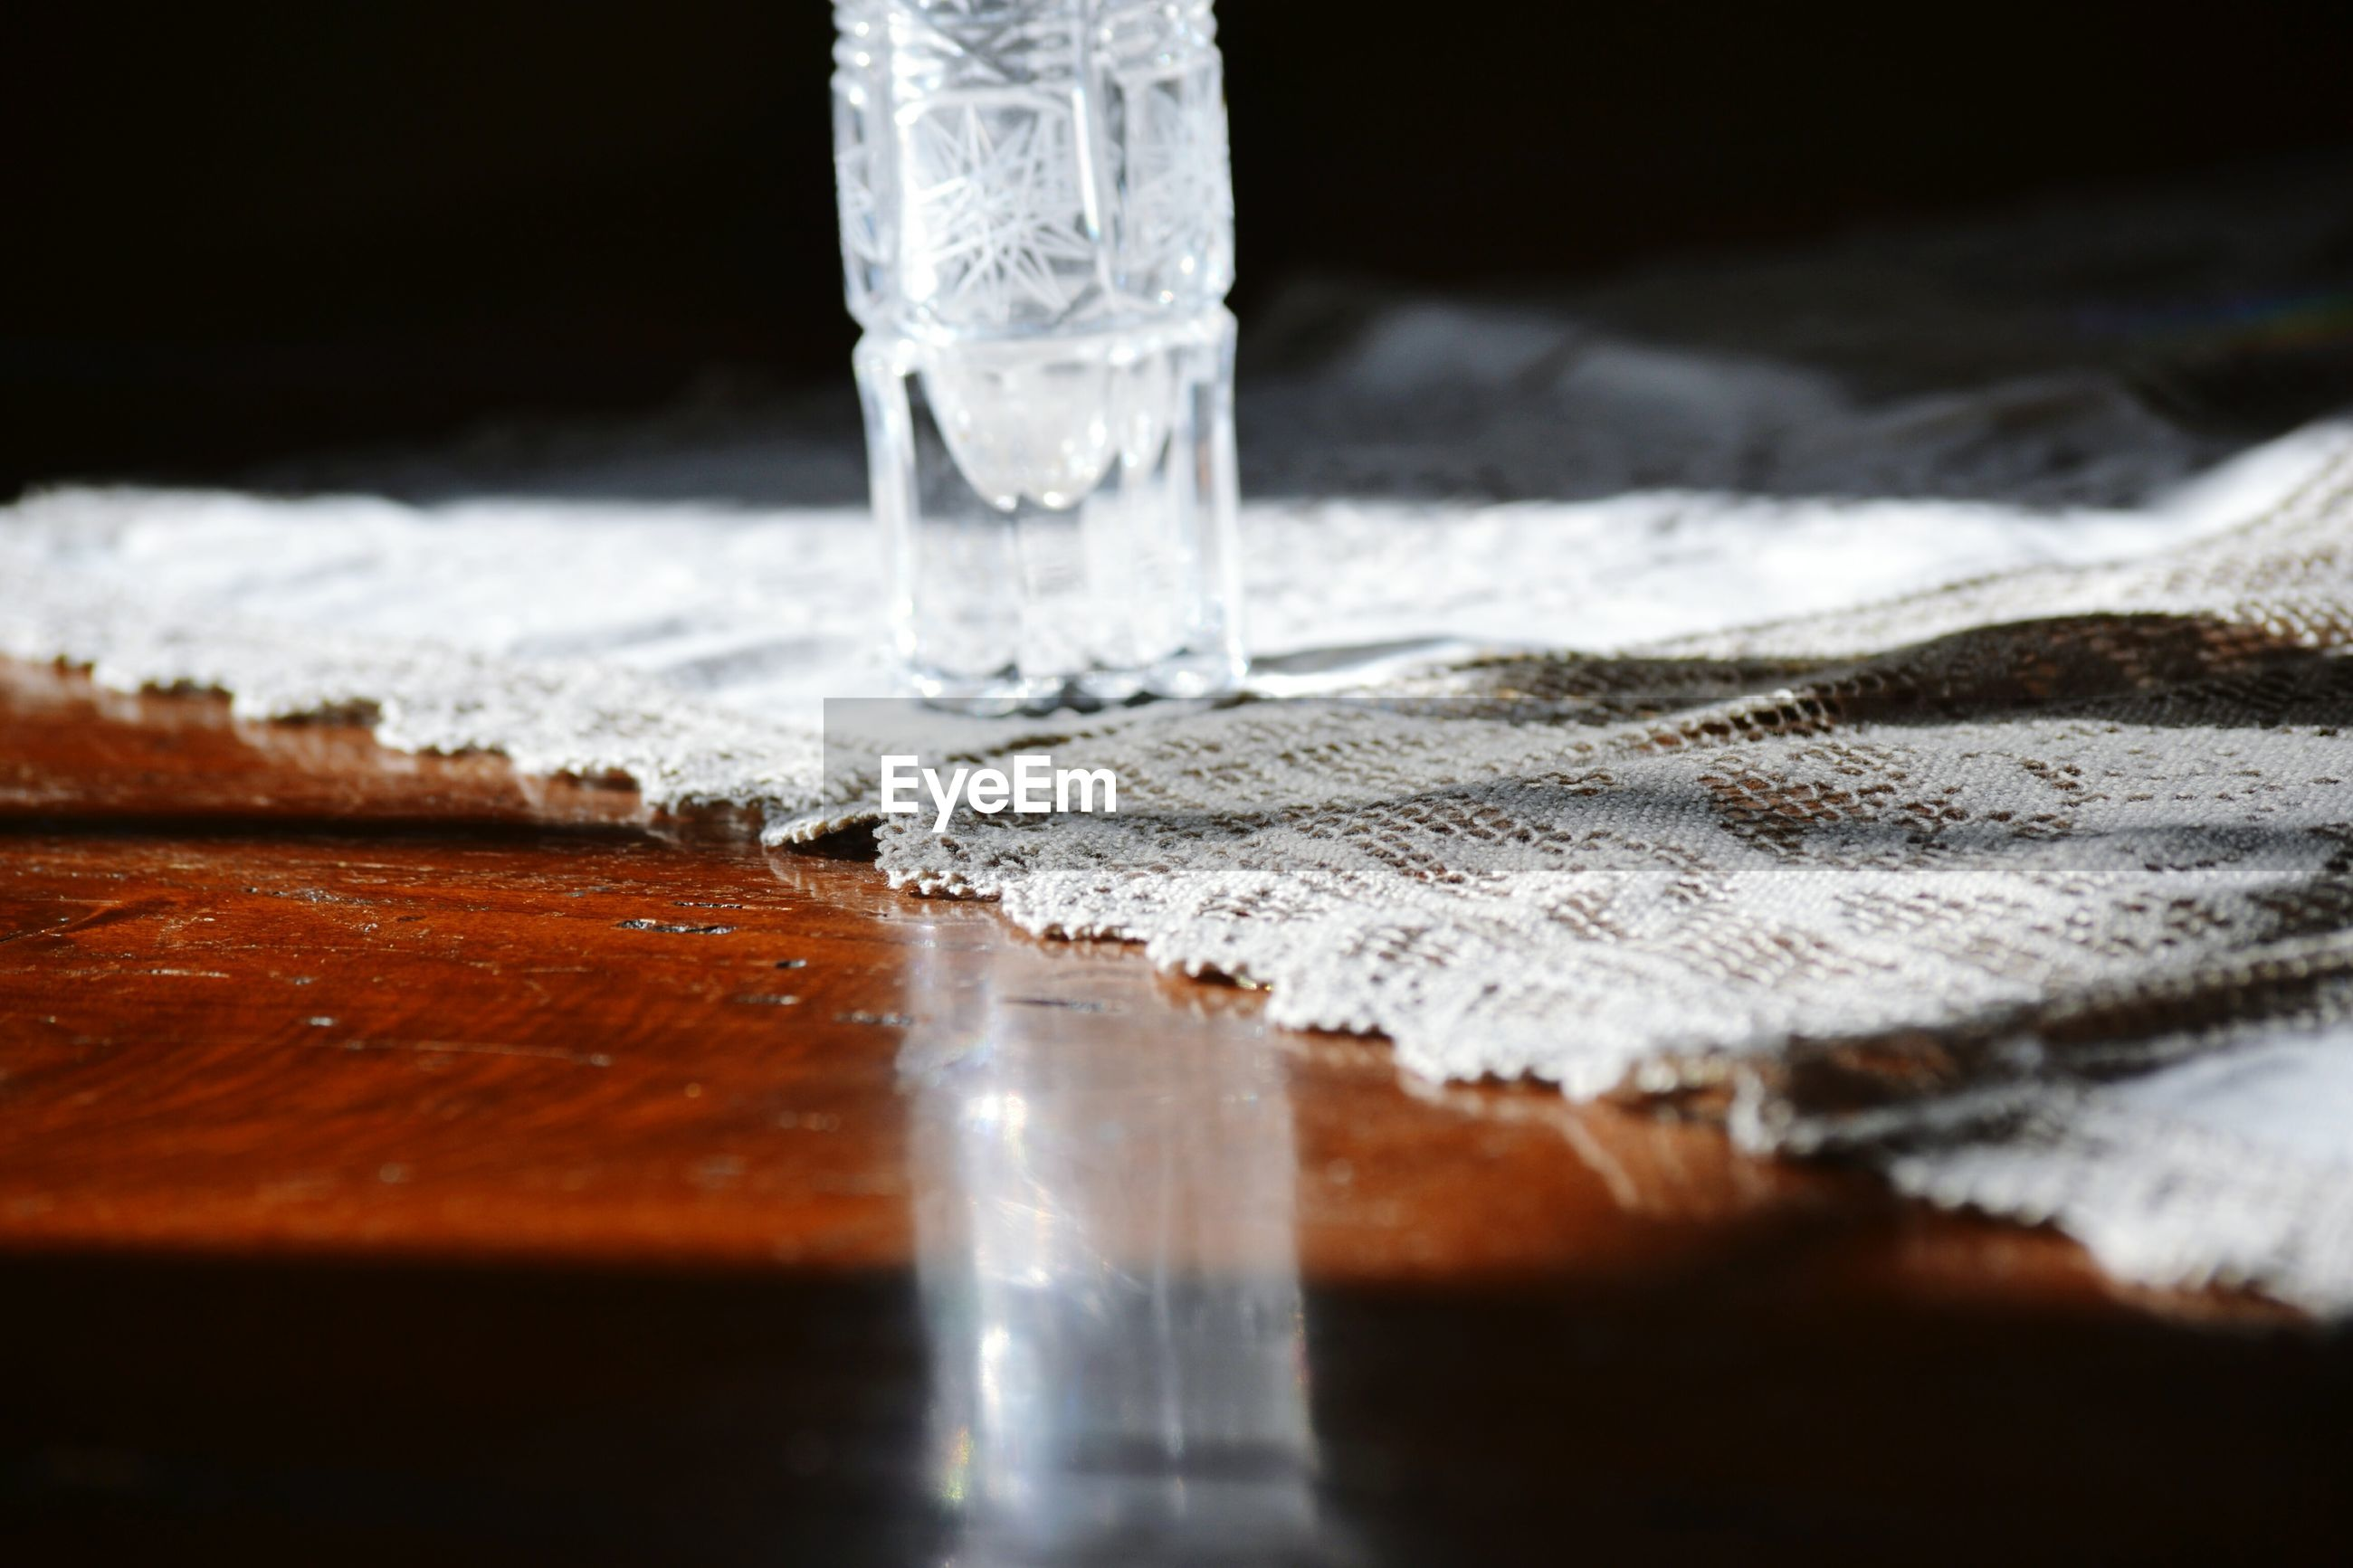 Close-up of crystal vase on table